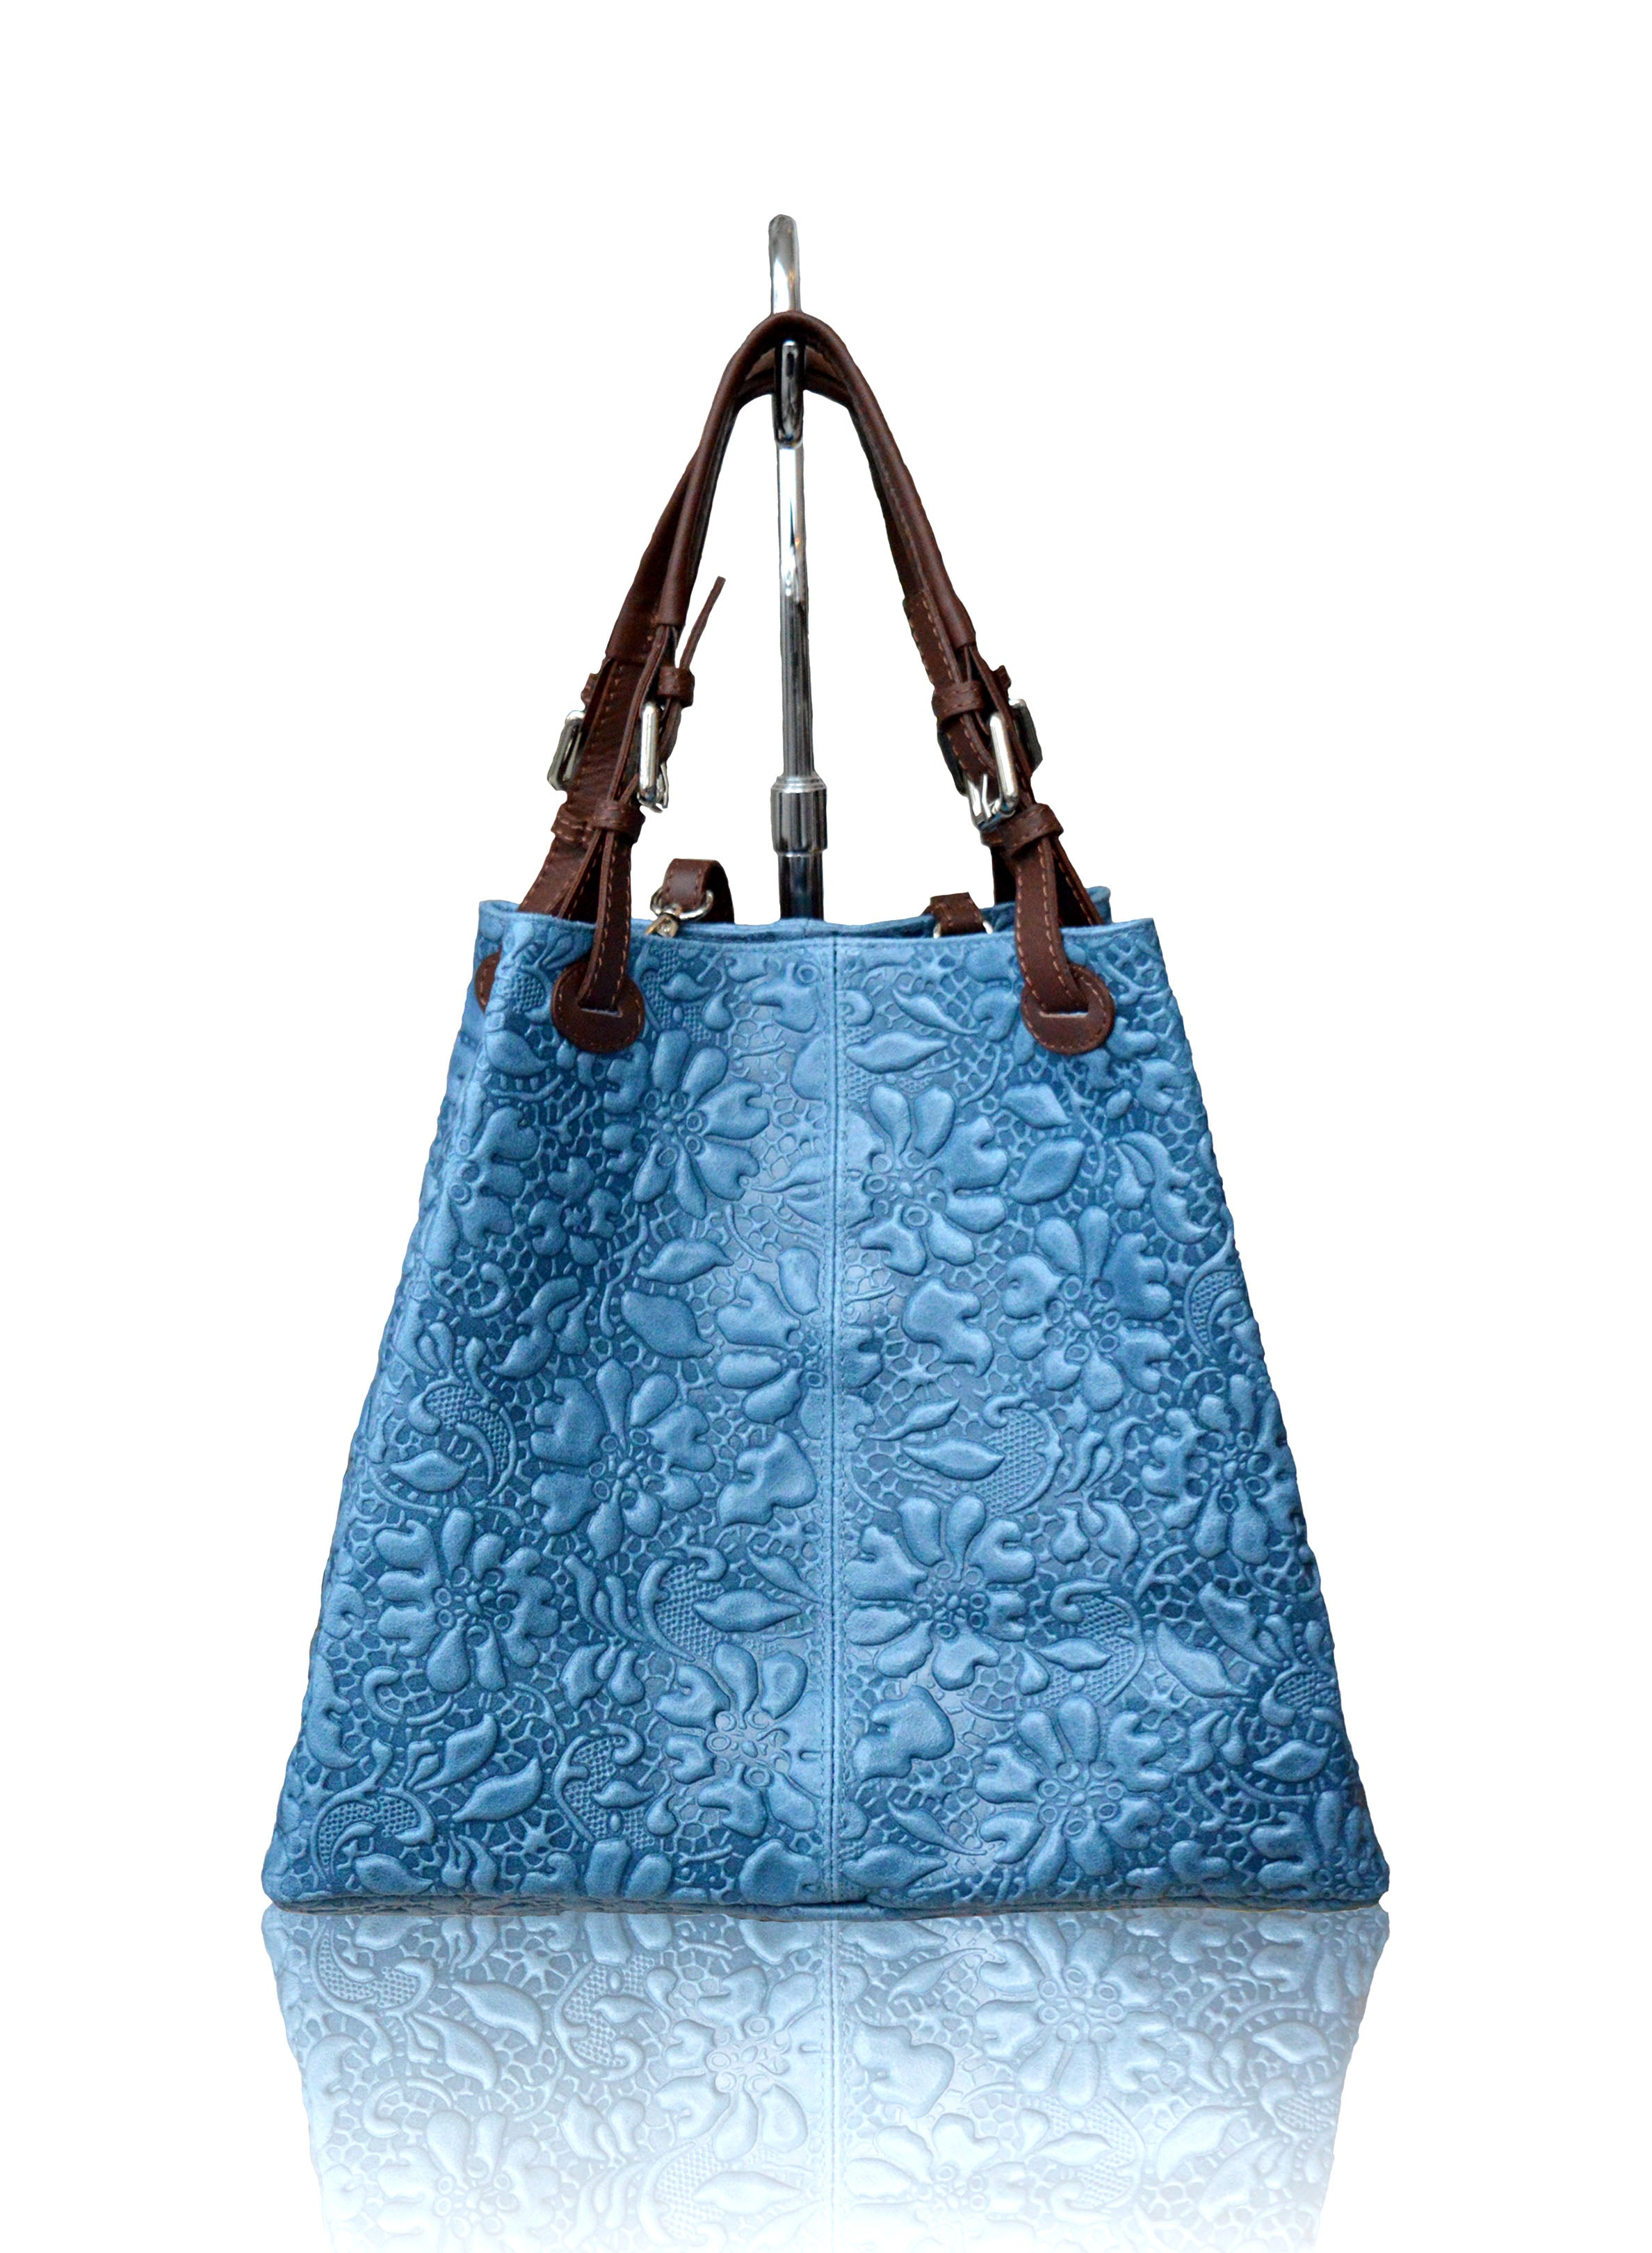 Leather Bag with Embossed Flower Print - Made in Italy